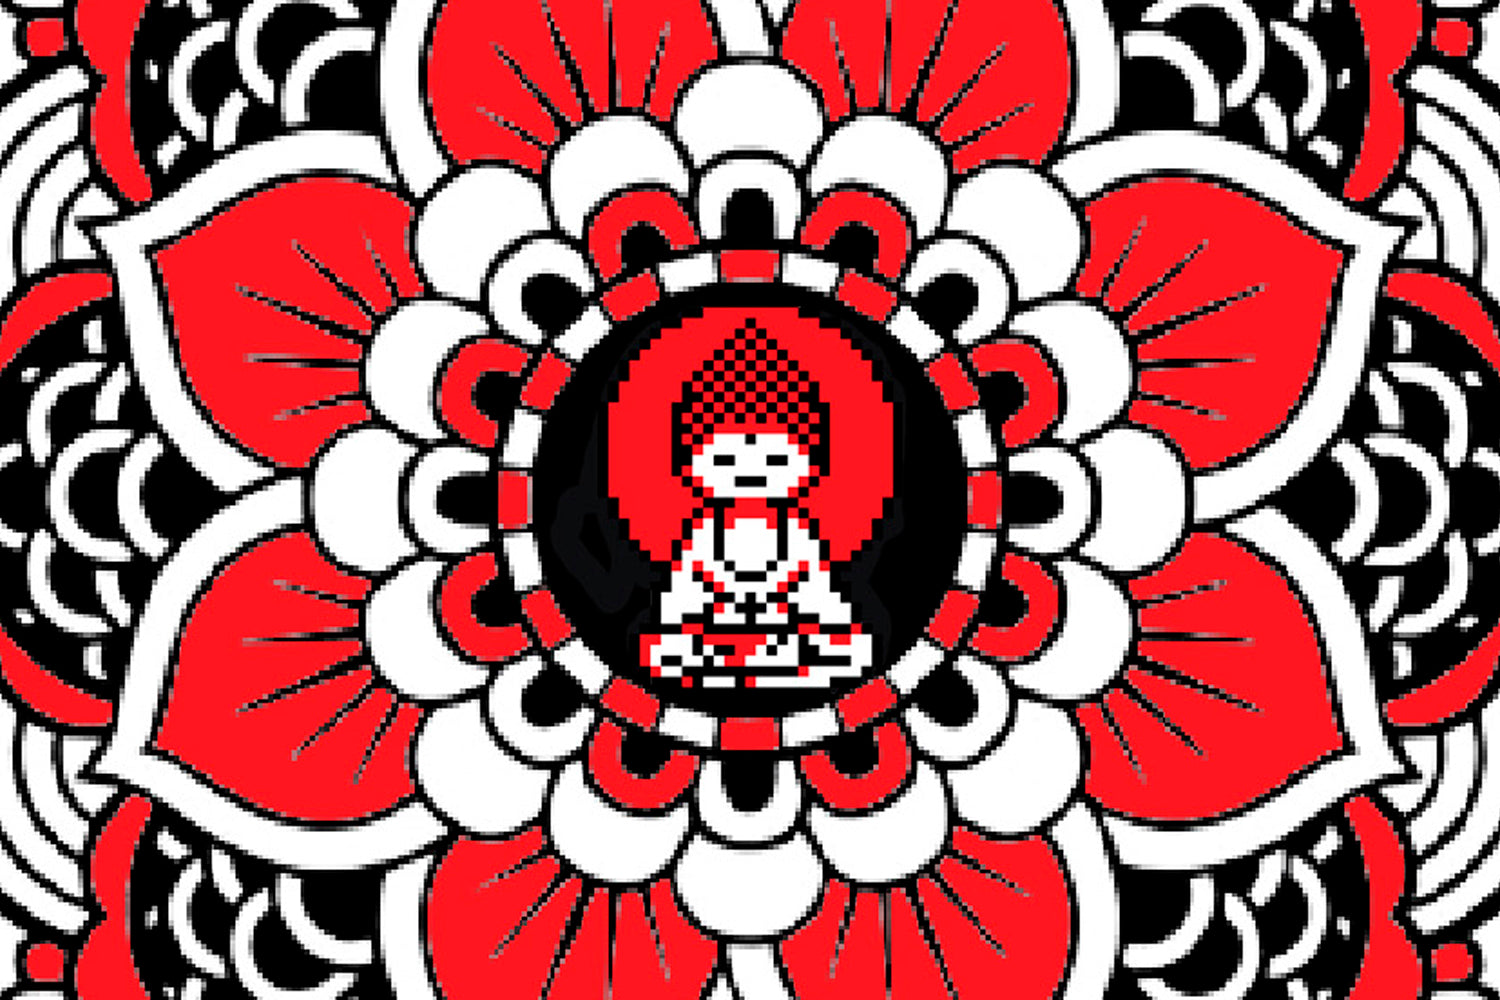 FEATURED ARTIST: Pixel Buddha